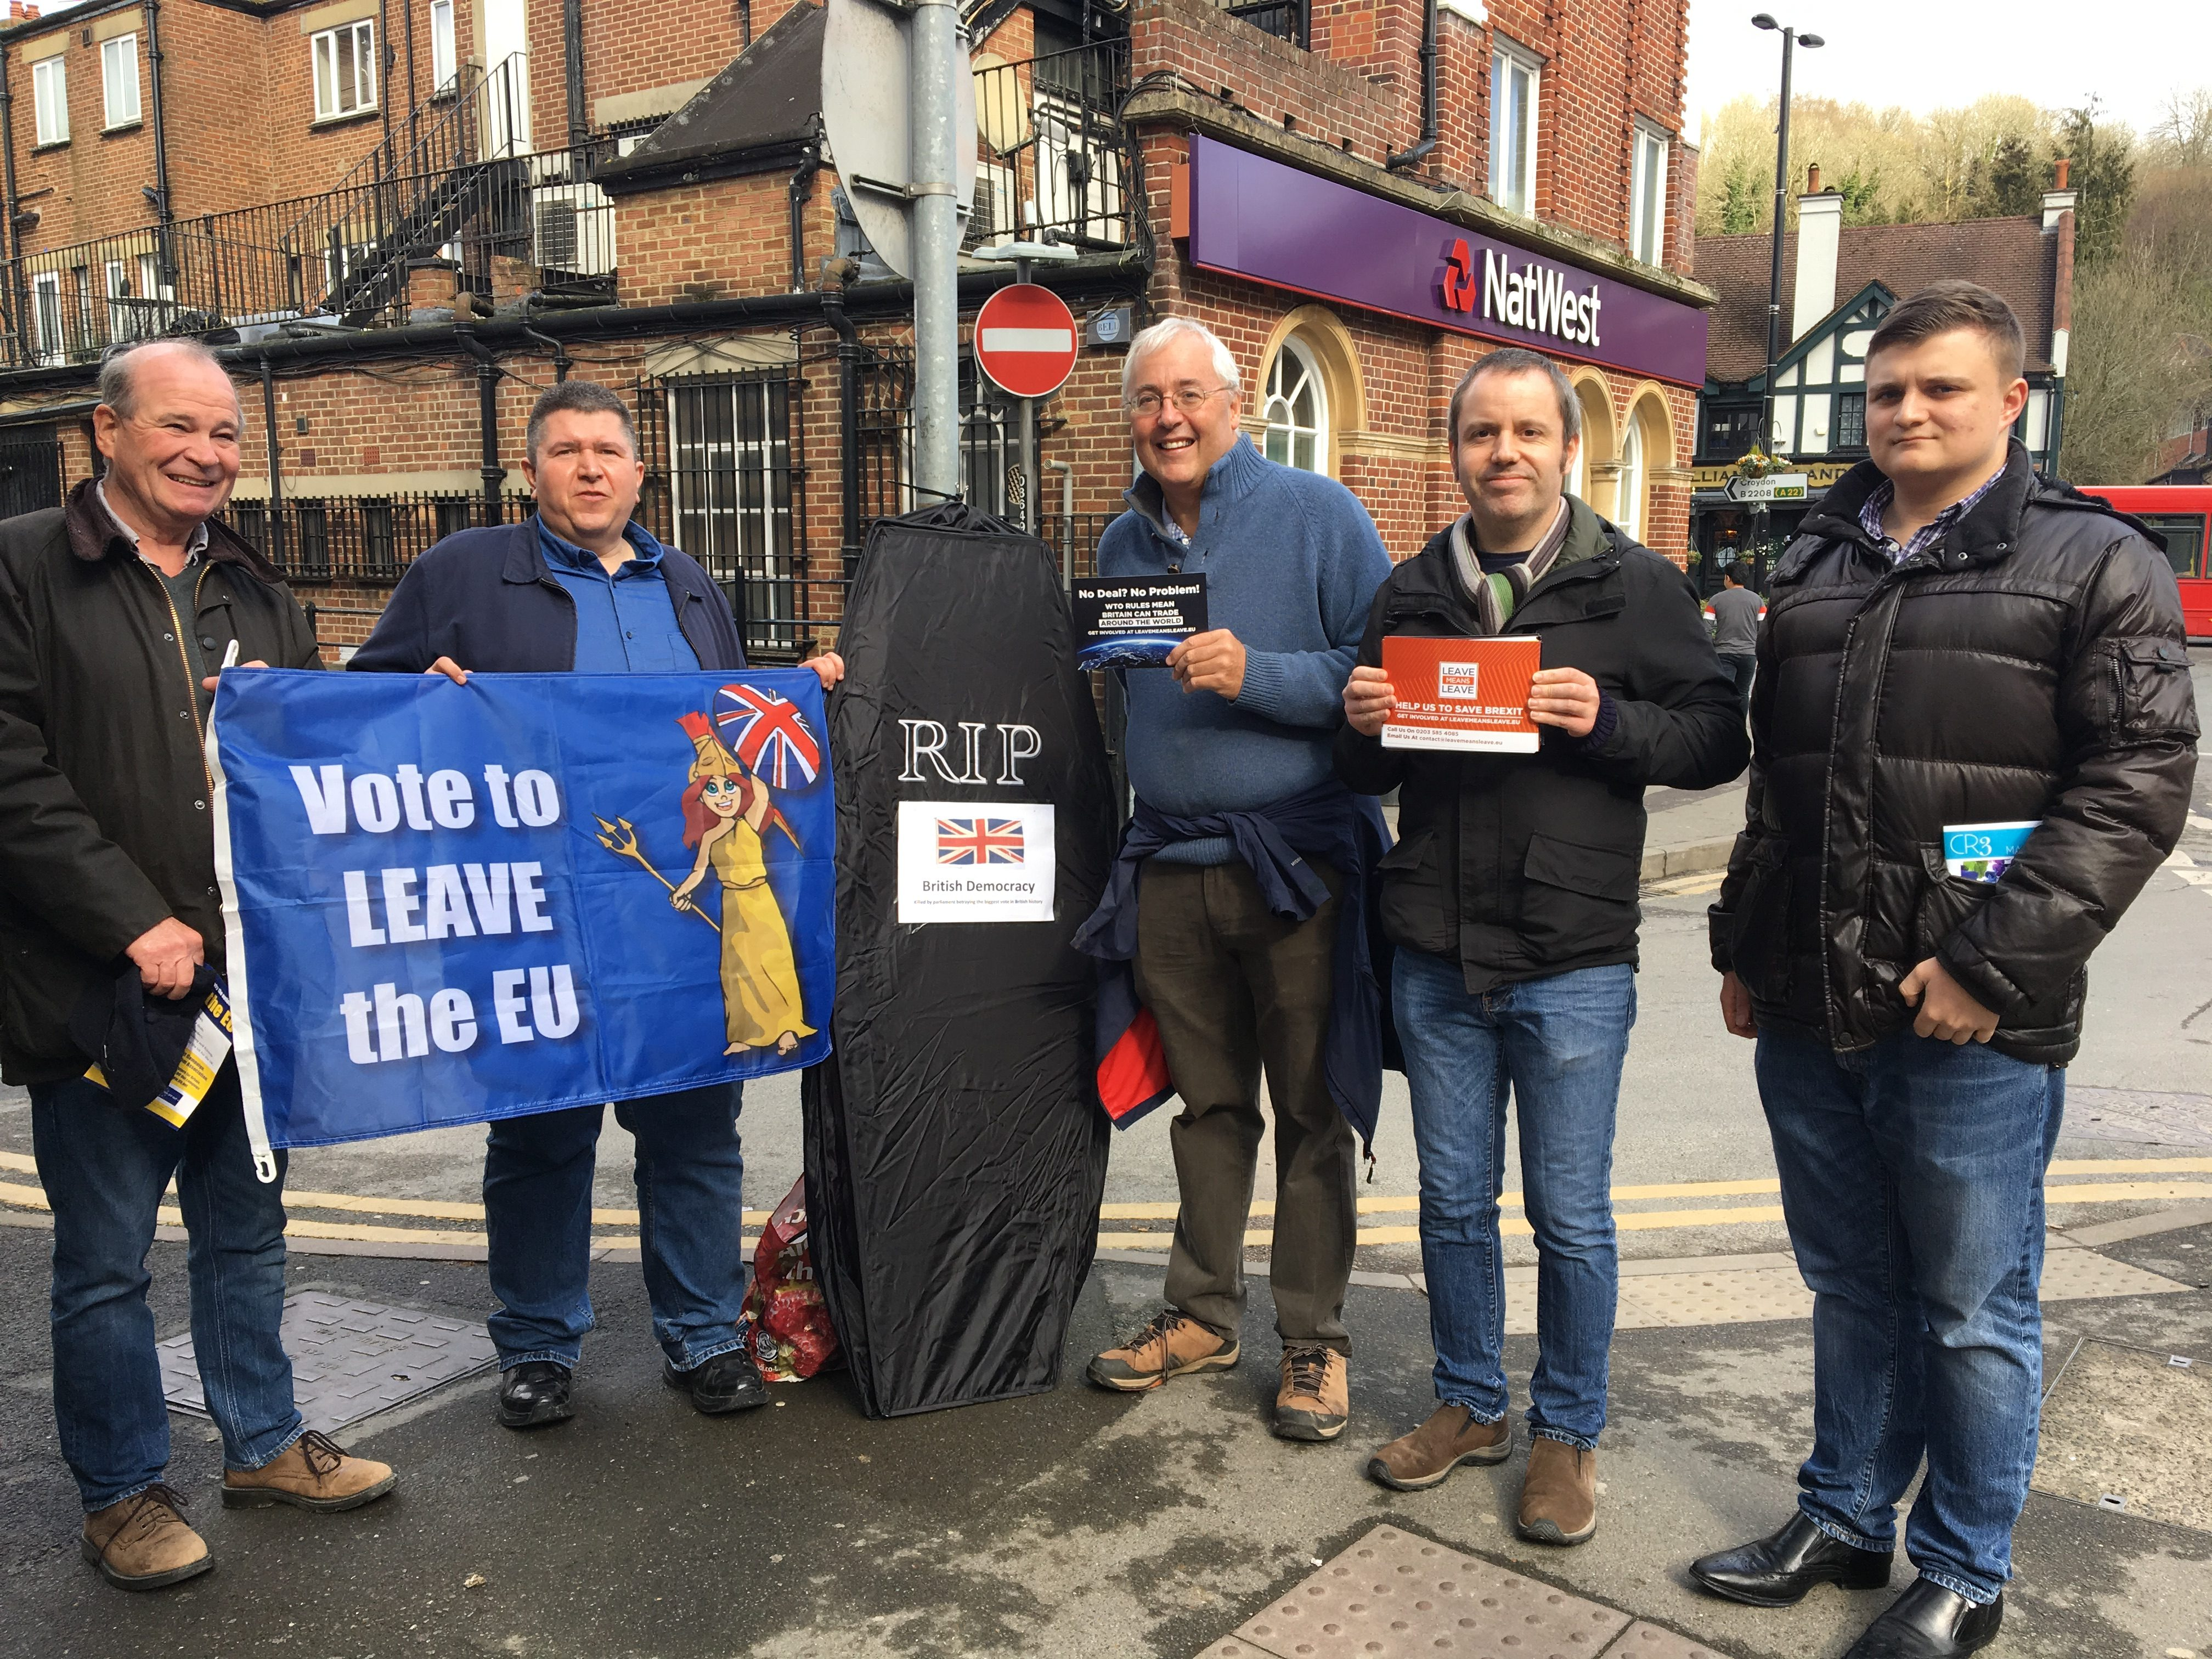 A great day in Caterham – Putting pressure on Sam Gyimah MP